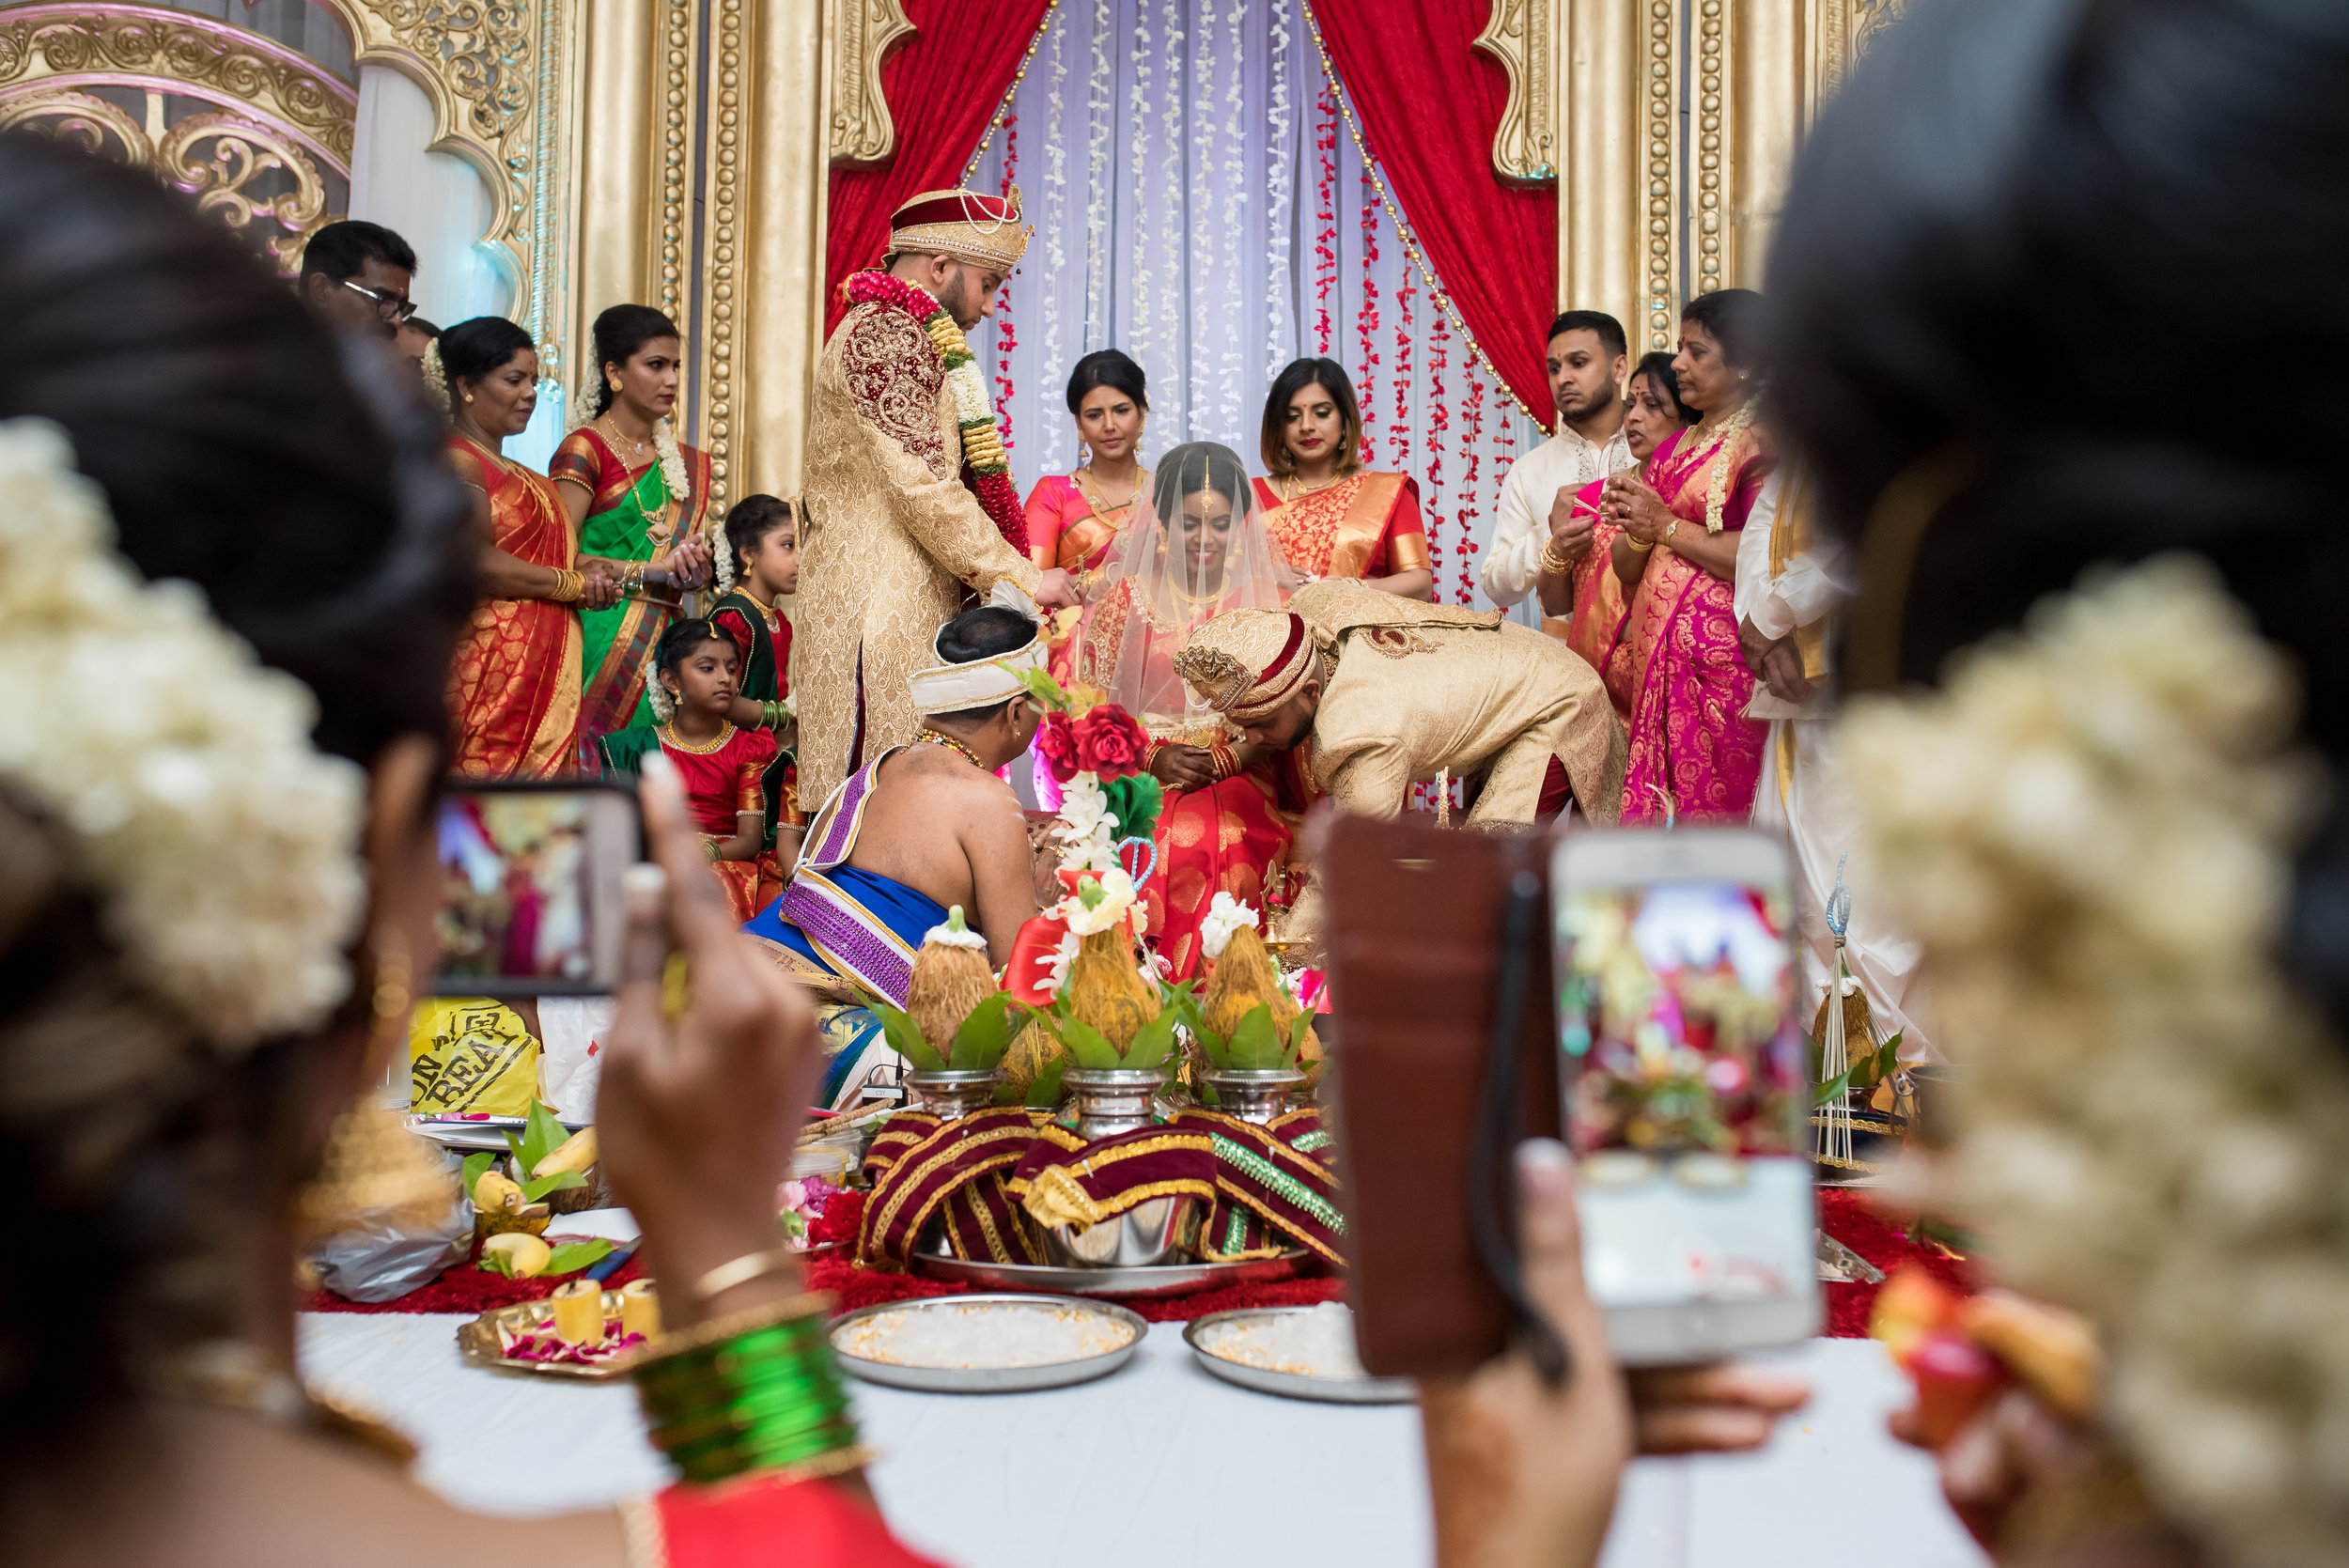 Be a responsible loved one! If you must snap the Thaali moment, keep it off the stage <3